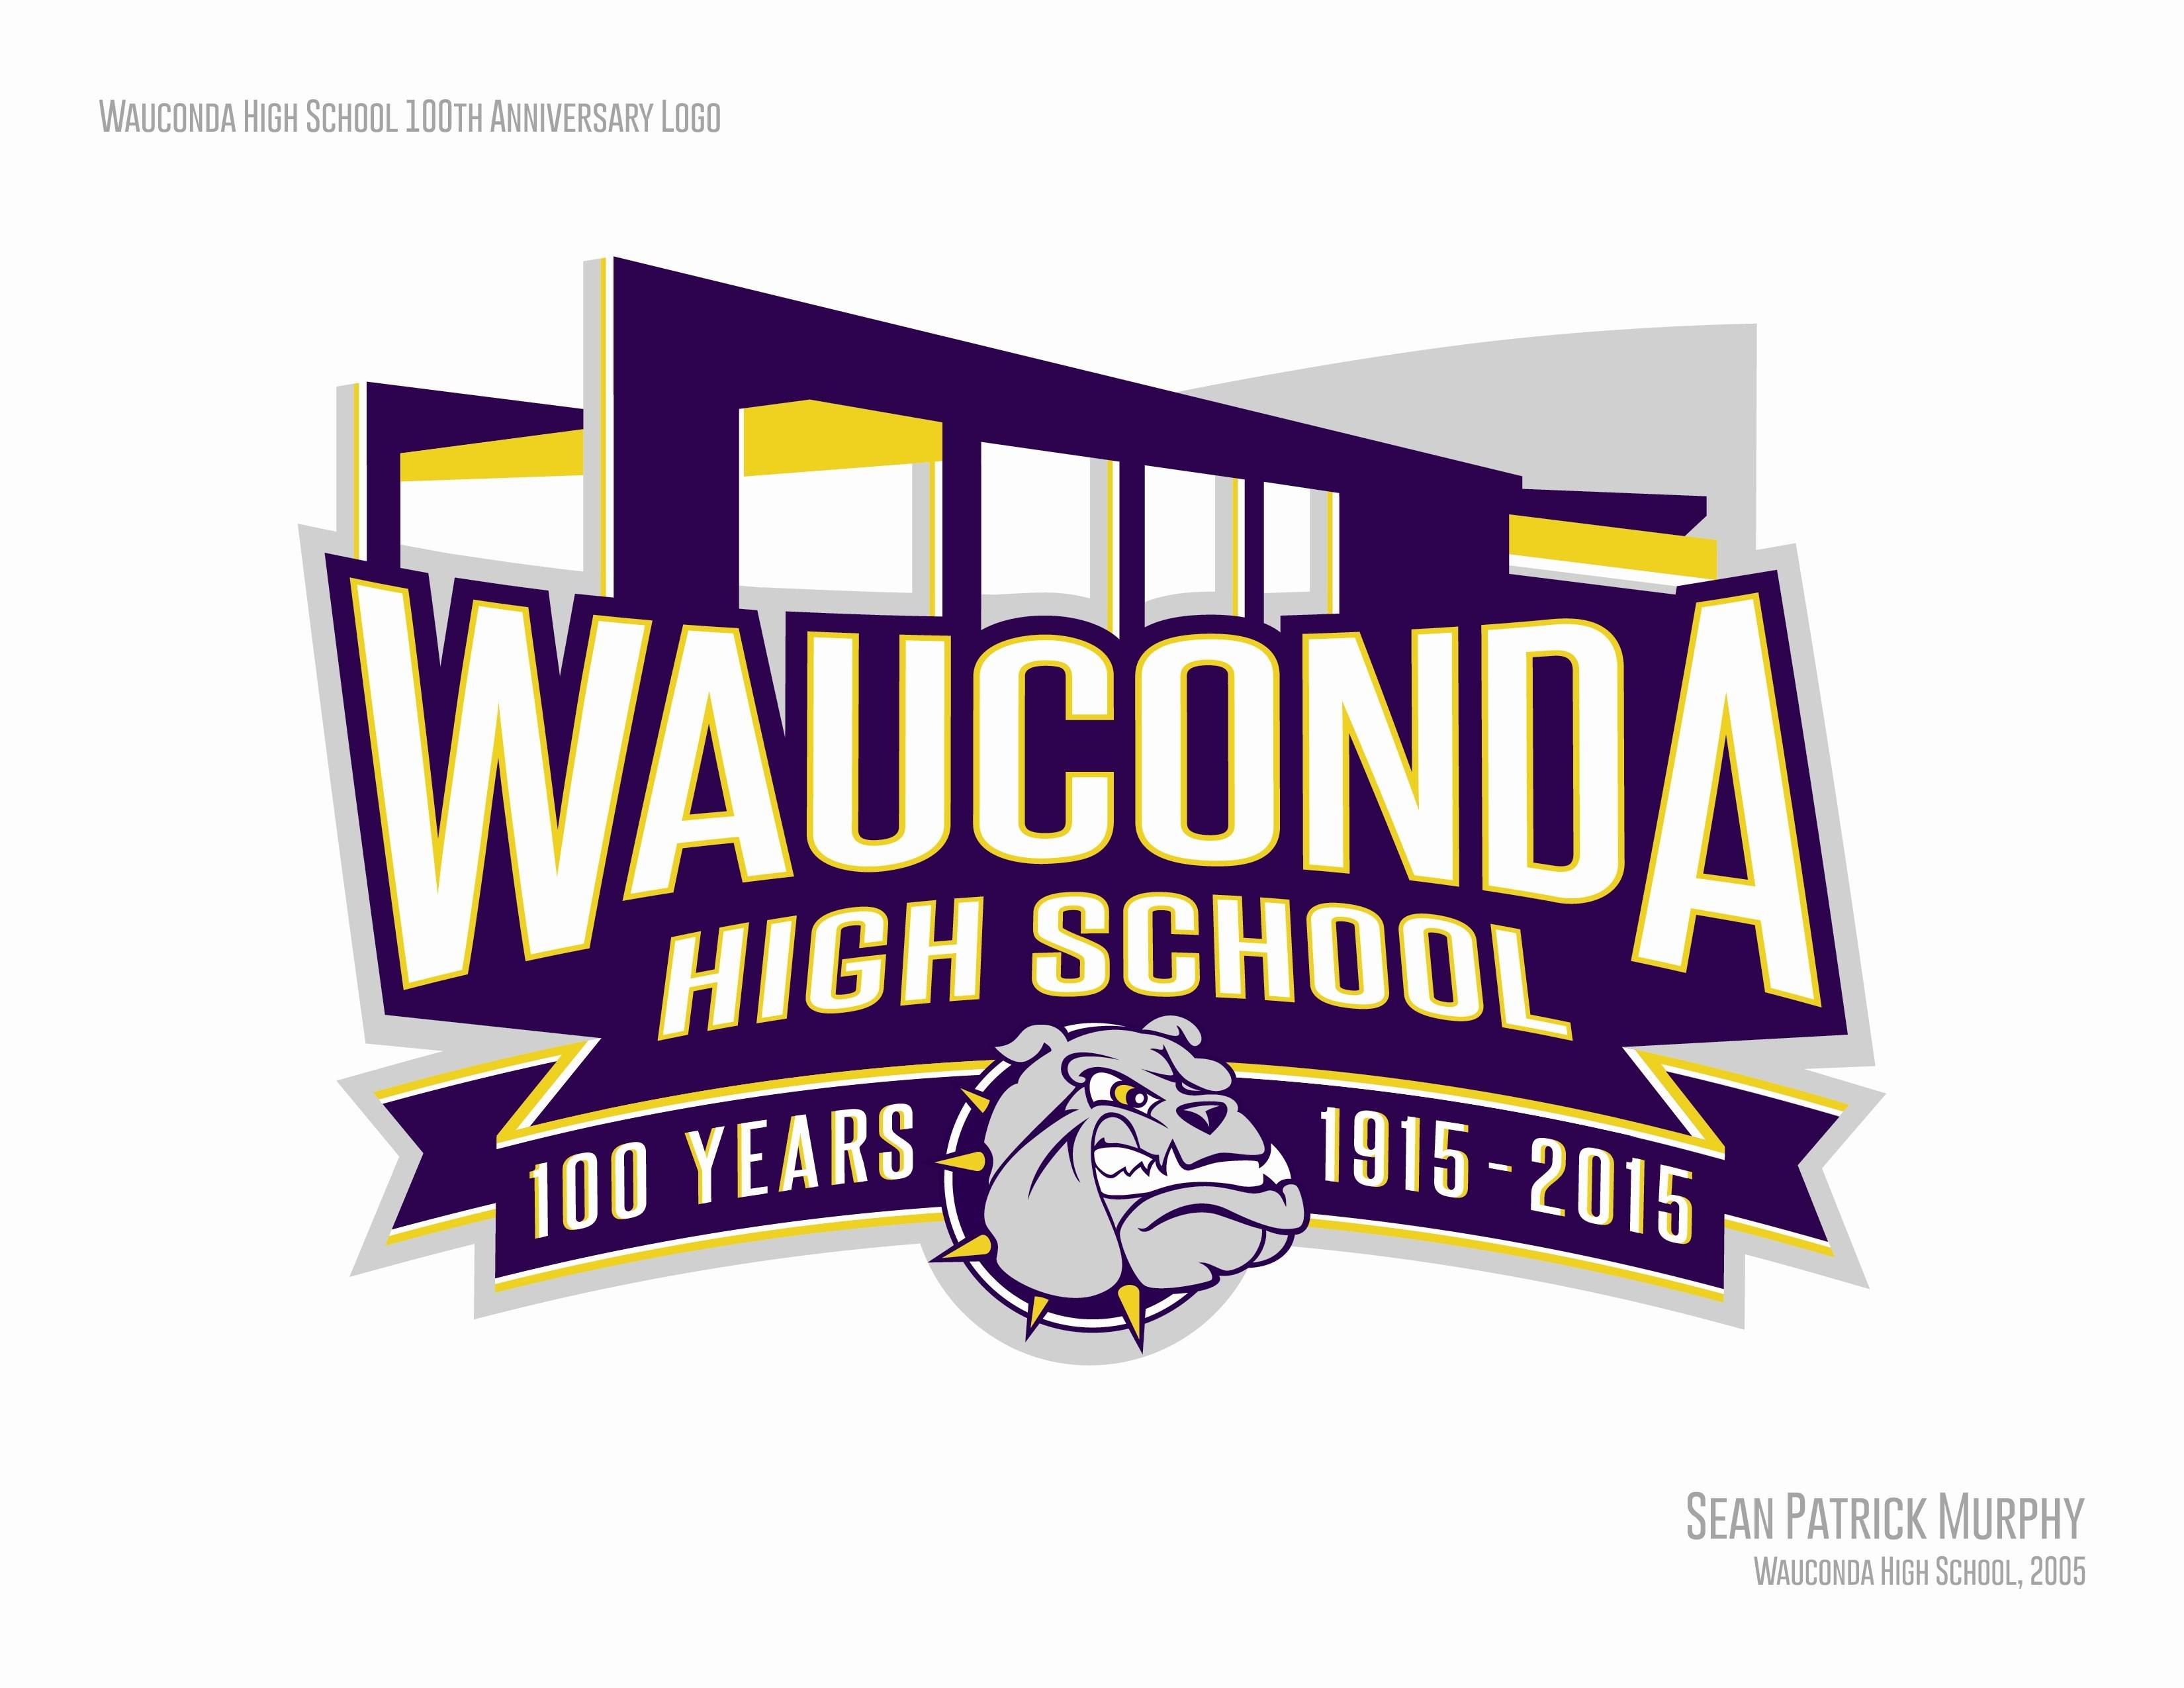 A Wauconda High School alumni designed this centennial logo, which will be used on stationery, shirts and other displays during the school's upcoming centennial year.